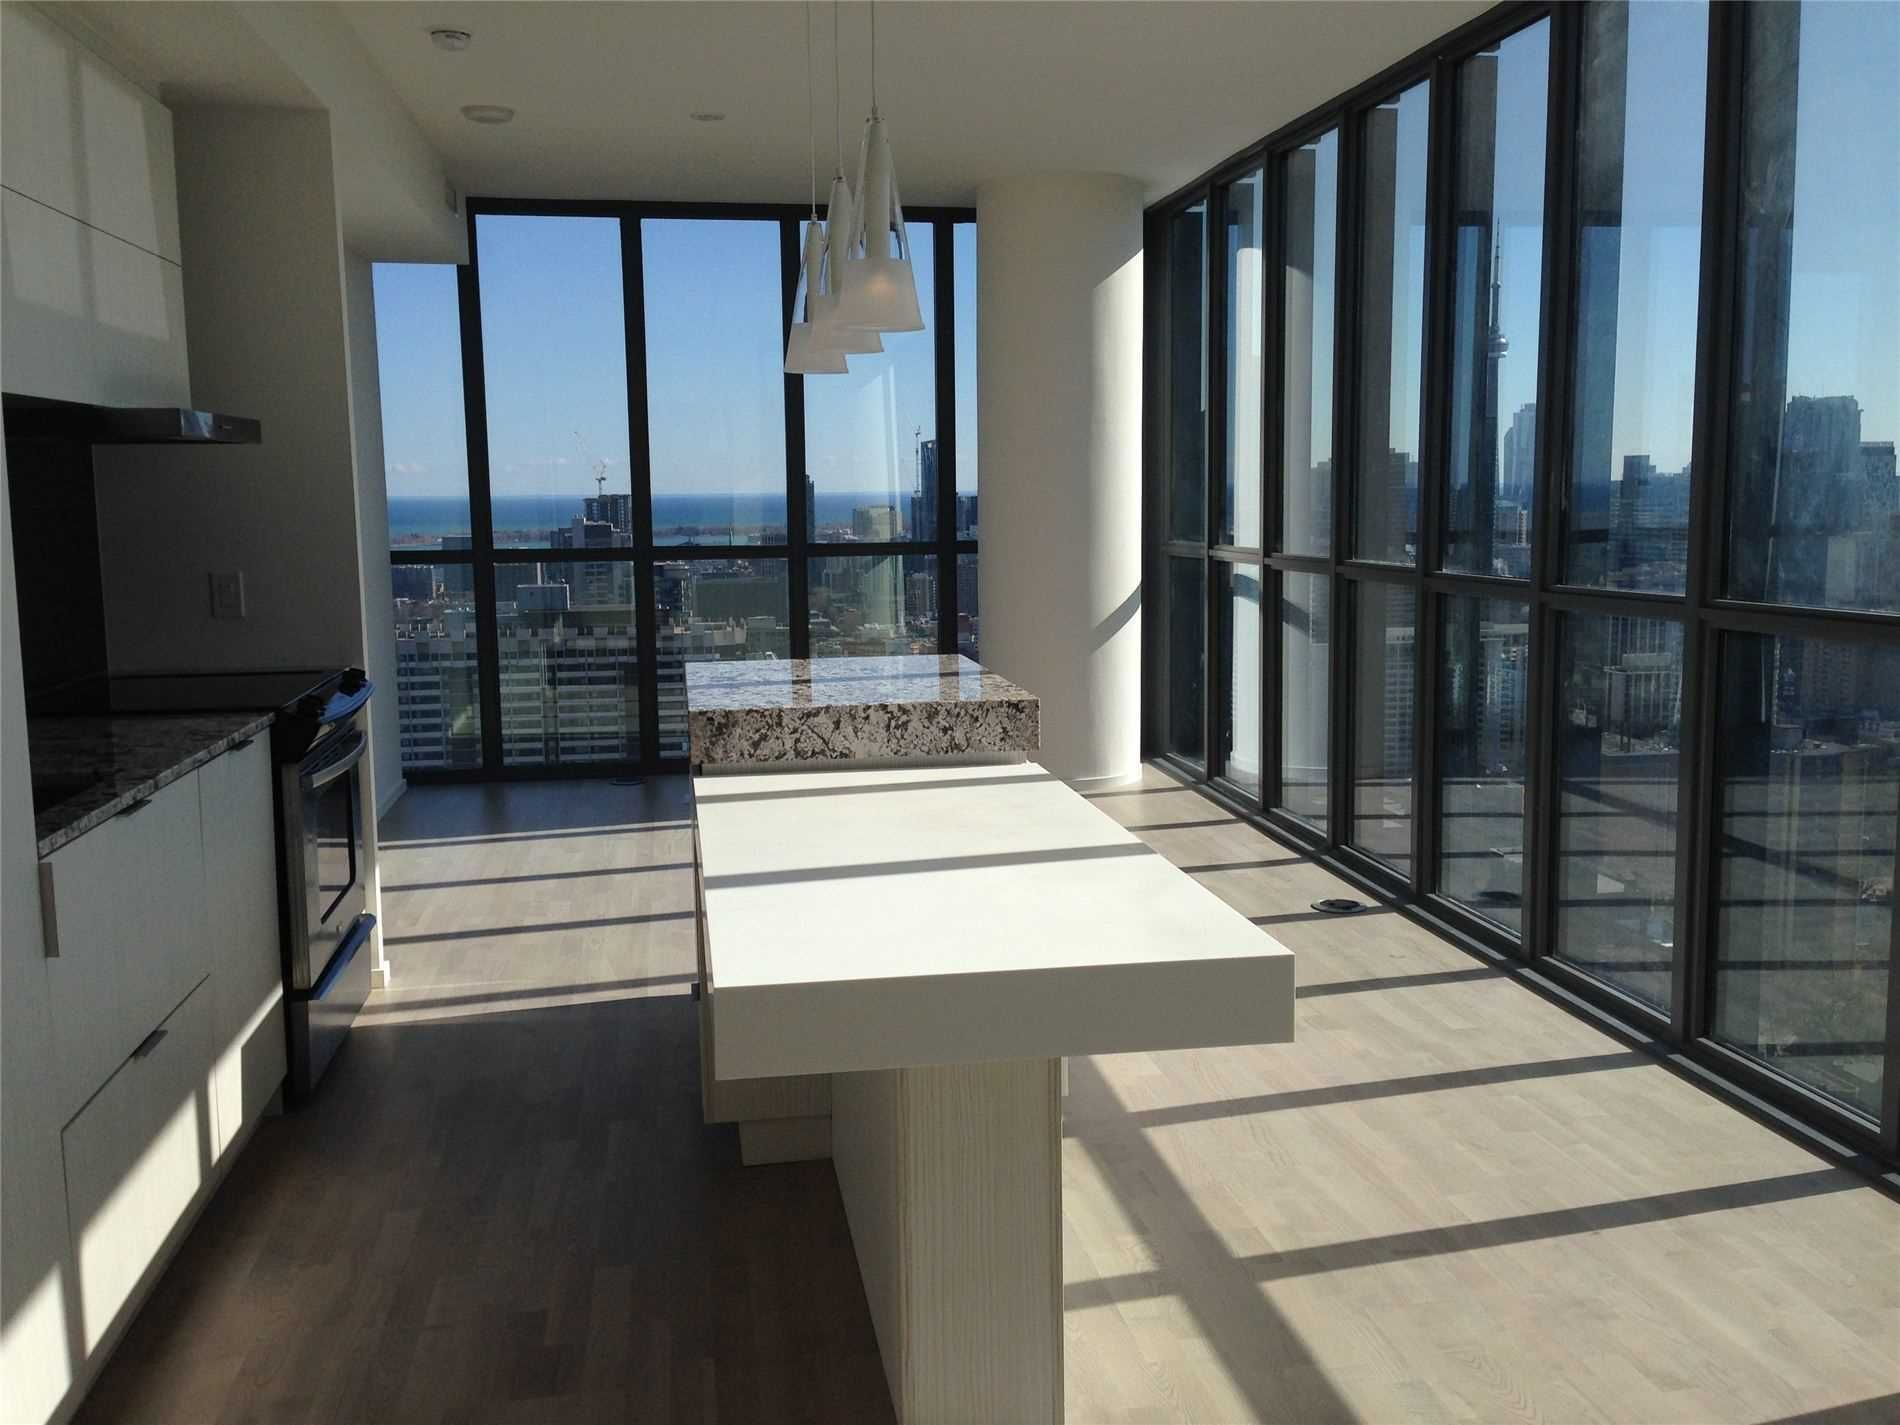 101 Charles St, unit 3204 for sale in Yonge and Bloor - image #2